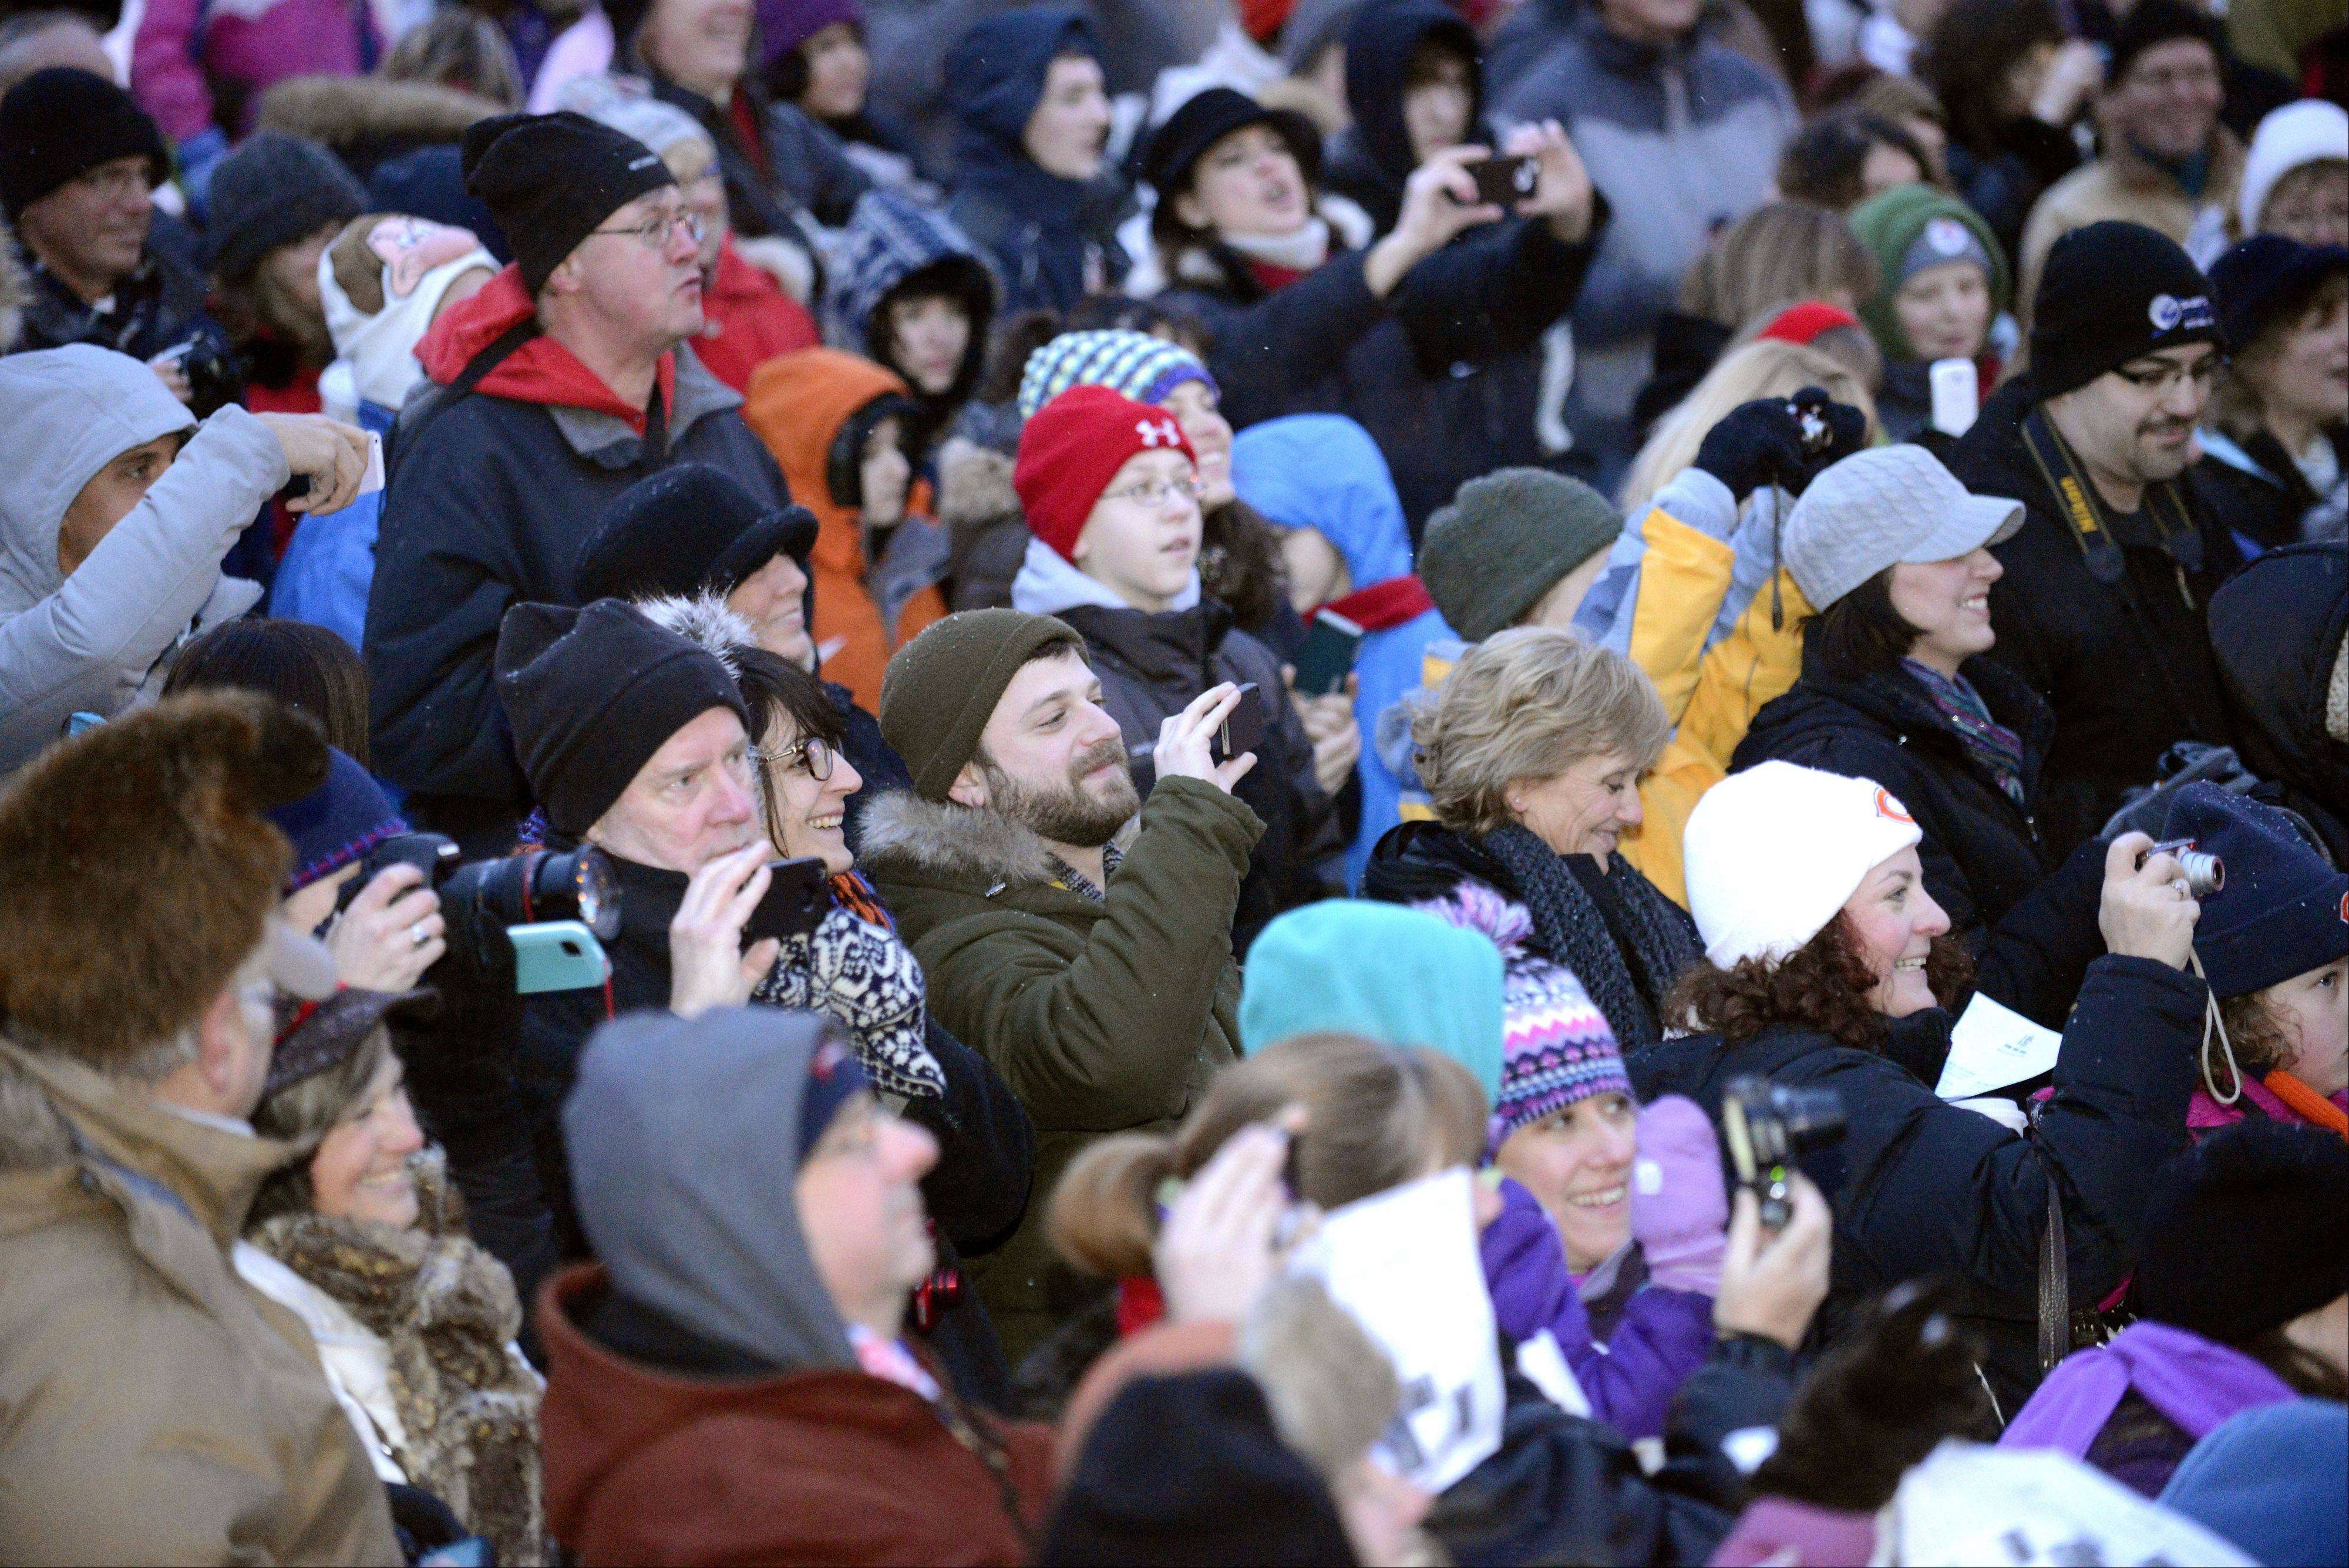 The crowd photographs and videotapes Woodstock Willie's appearance at the annual Groundhog Day event Saturday in Woodstock Square.